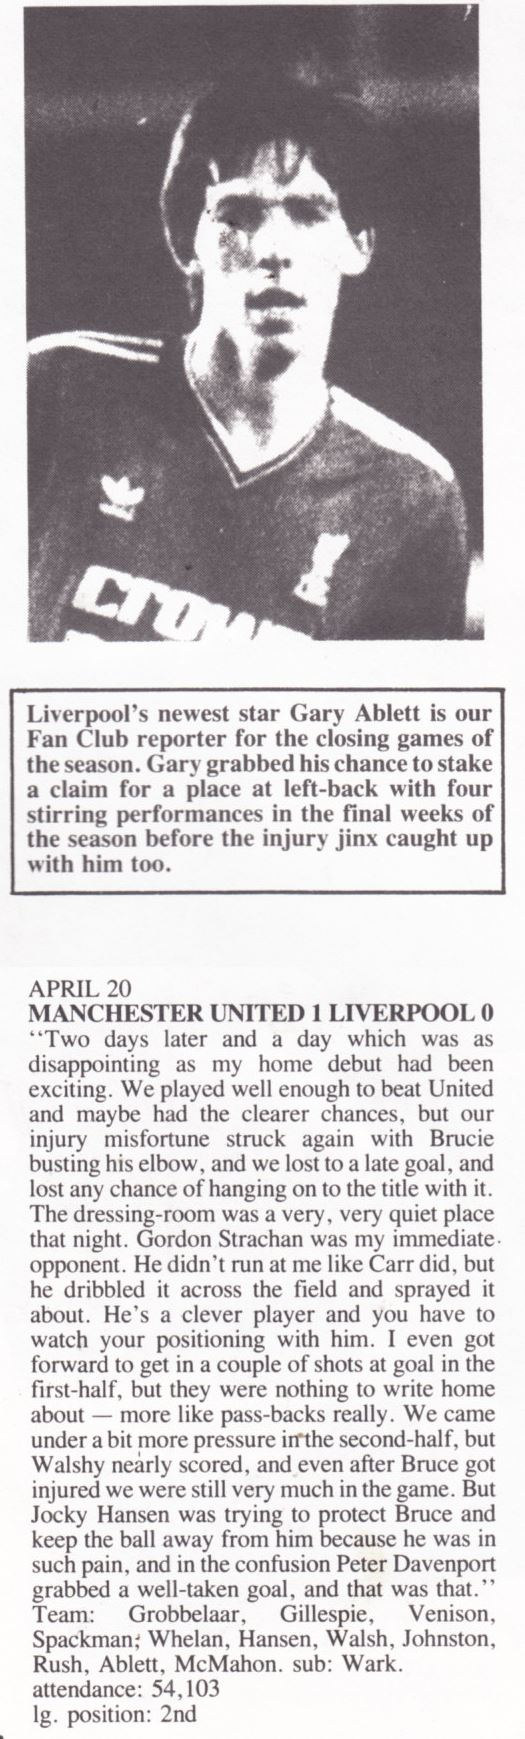 Gary Ablett's view on Manchester United - Liverpool - Nottingham Forest 20 April 1987